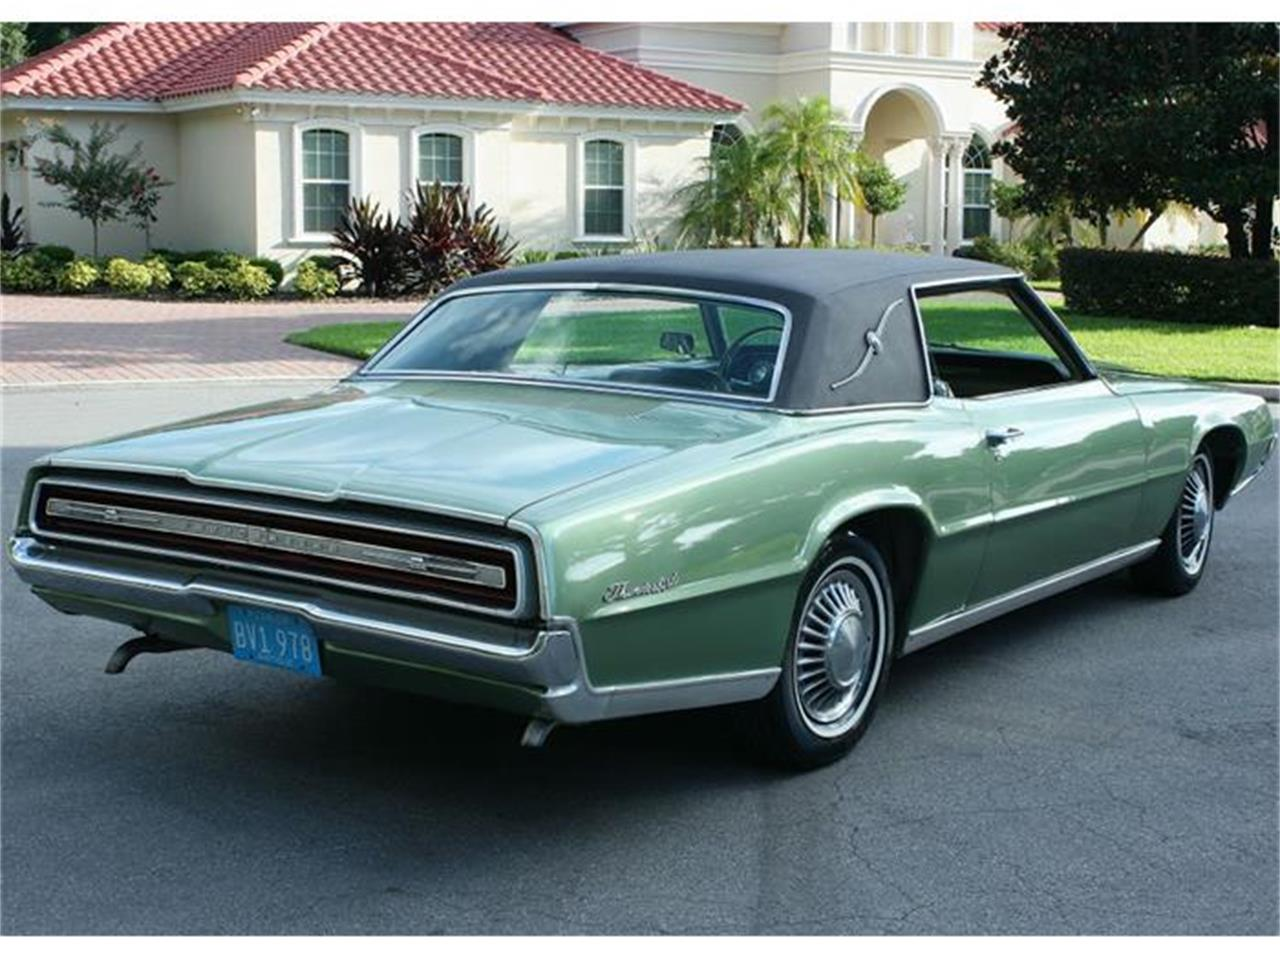 Large Picture of '67 Ford Thunderbird located in Florida - $18,500.00 - ITN1